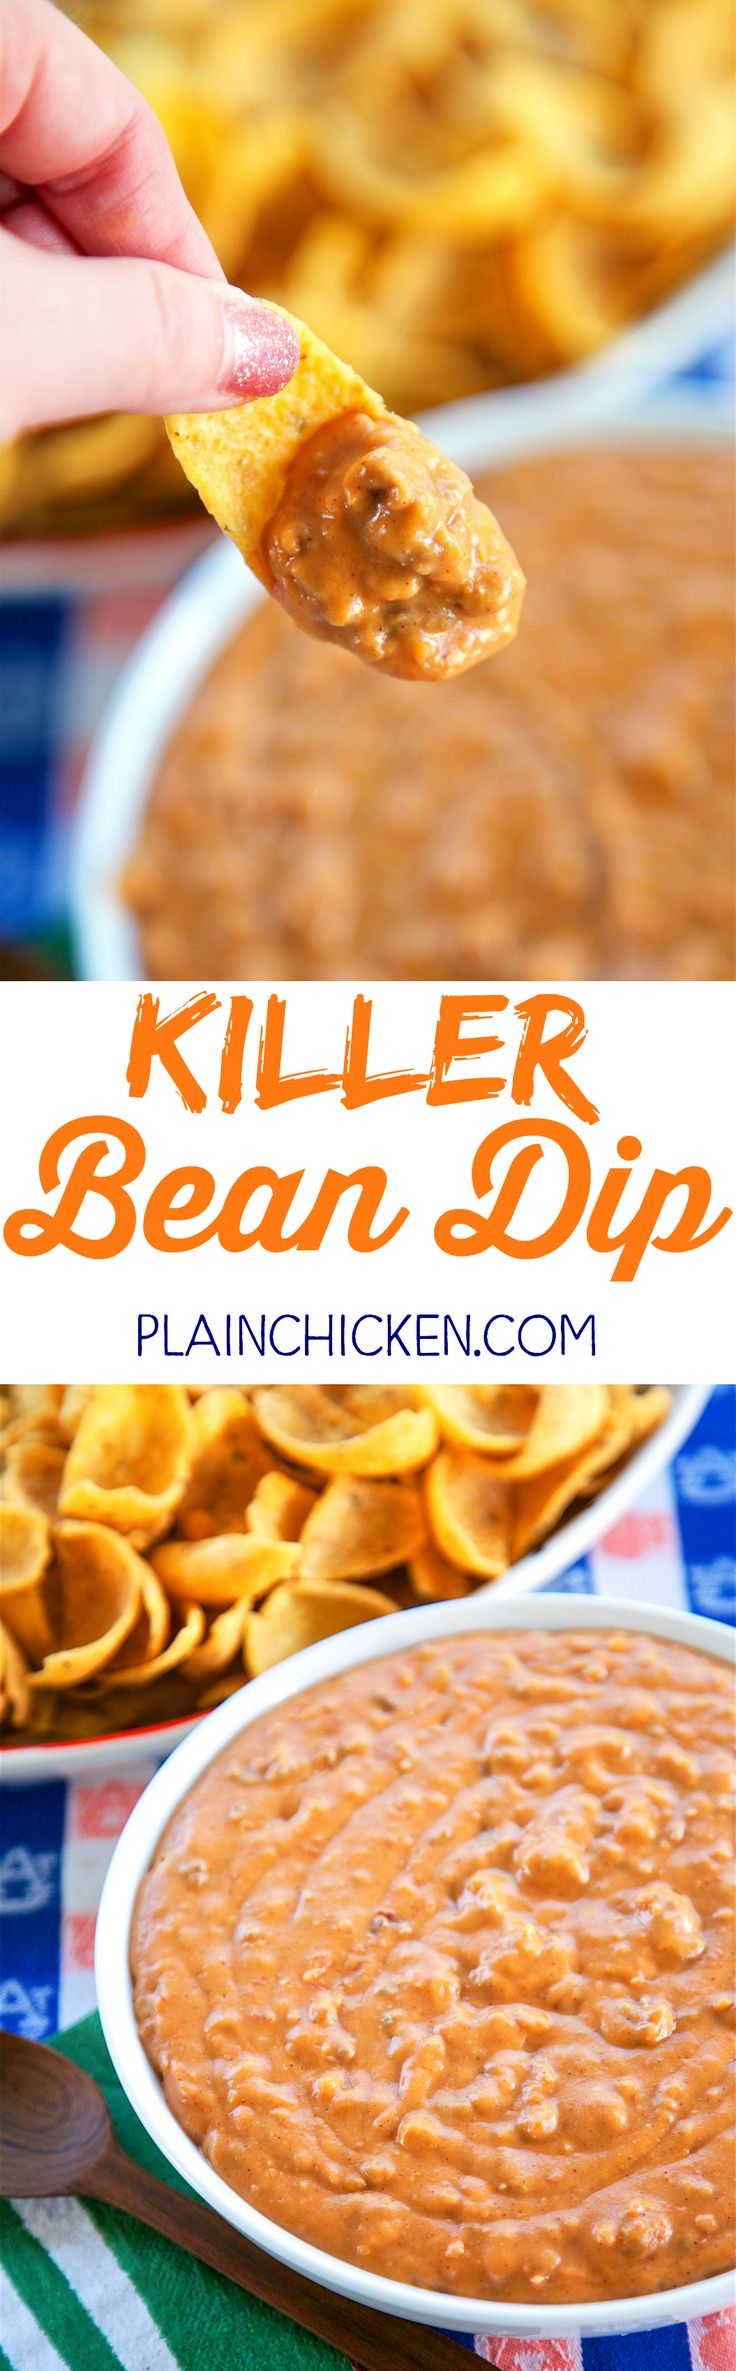 Killer Bean Dip - only 5 ingredients! Refried beans, taco seasoning, hamburger, velveeta and salsa. Can make on the stove or in the slow cooker. This stuff is CRAZY good! Great for tailgating!! I could make a meal out of this dip. Great Mexican dip!!